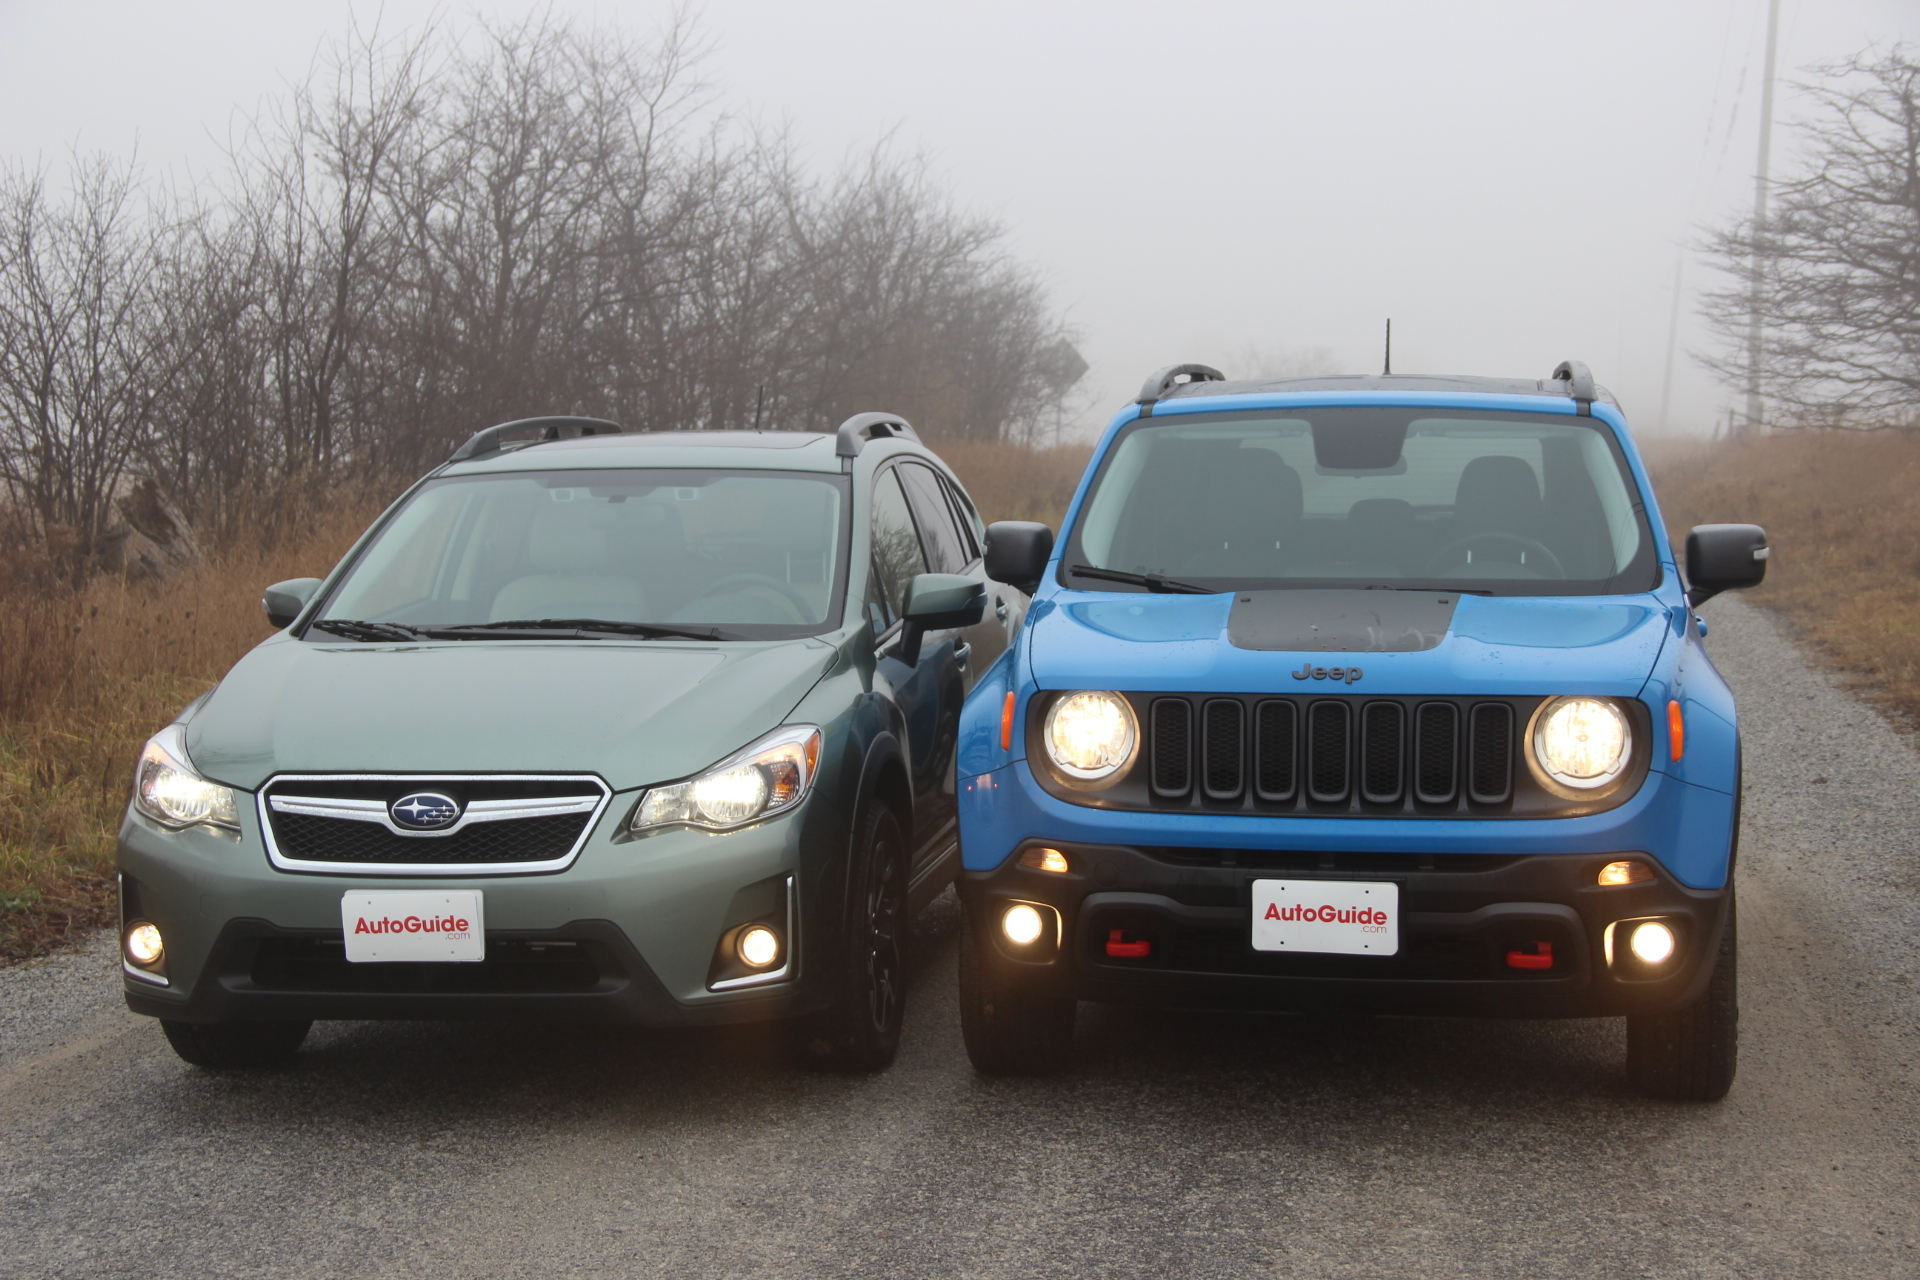 2016 Jeep Renegade vs 2016 Subaru Crosstrek AutoGuide